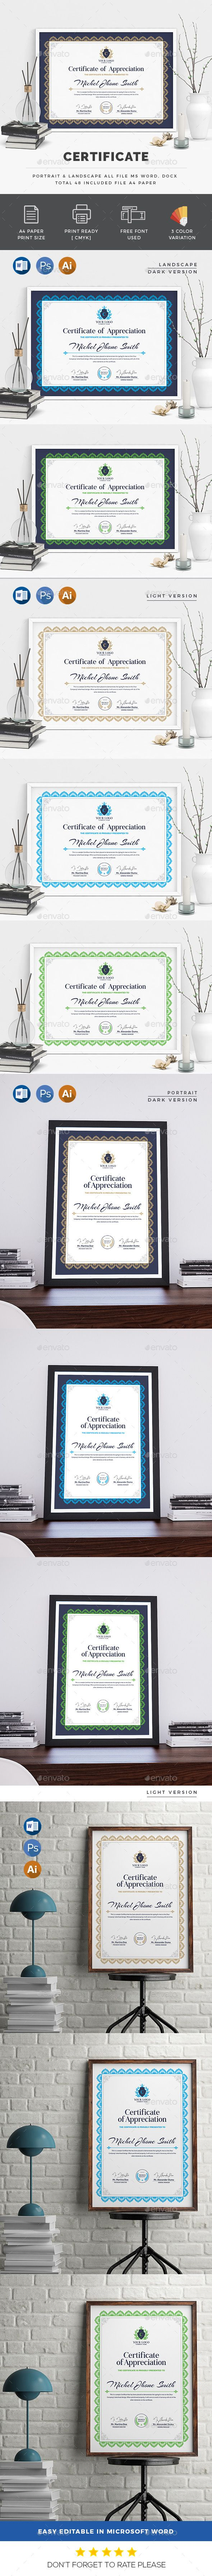 #Certificate - Certificates Stationery Download here: https://graphicriver.net/item/certificate/19612311?ref=alena994